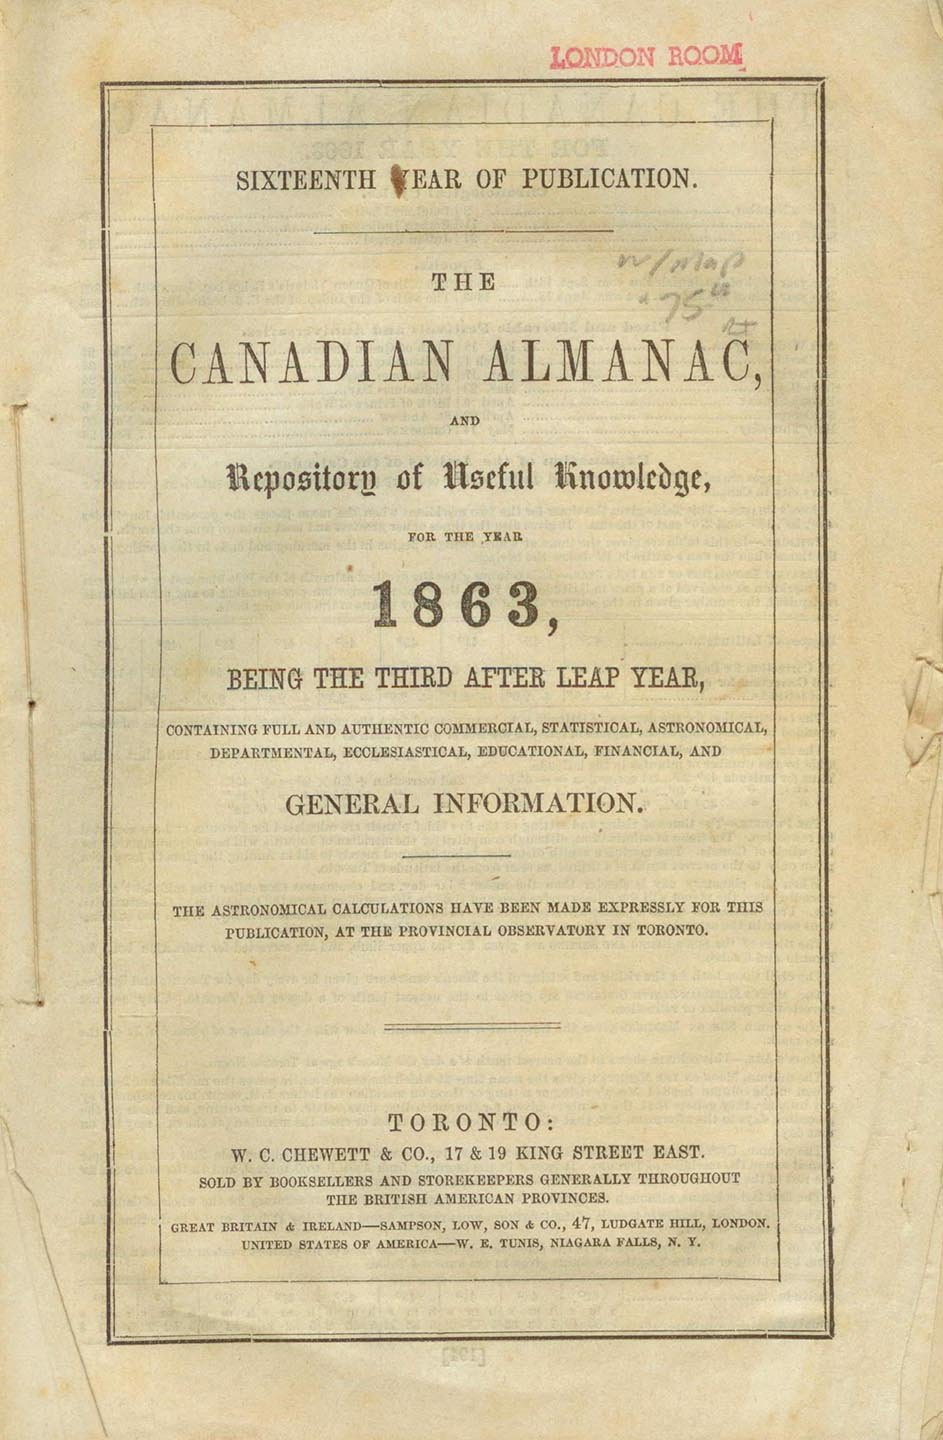 The Canadian Almanac, and Repository of Useful Knowledge for the year 1863